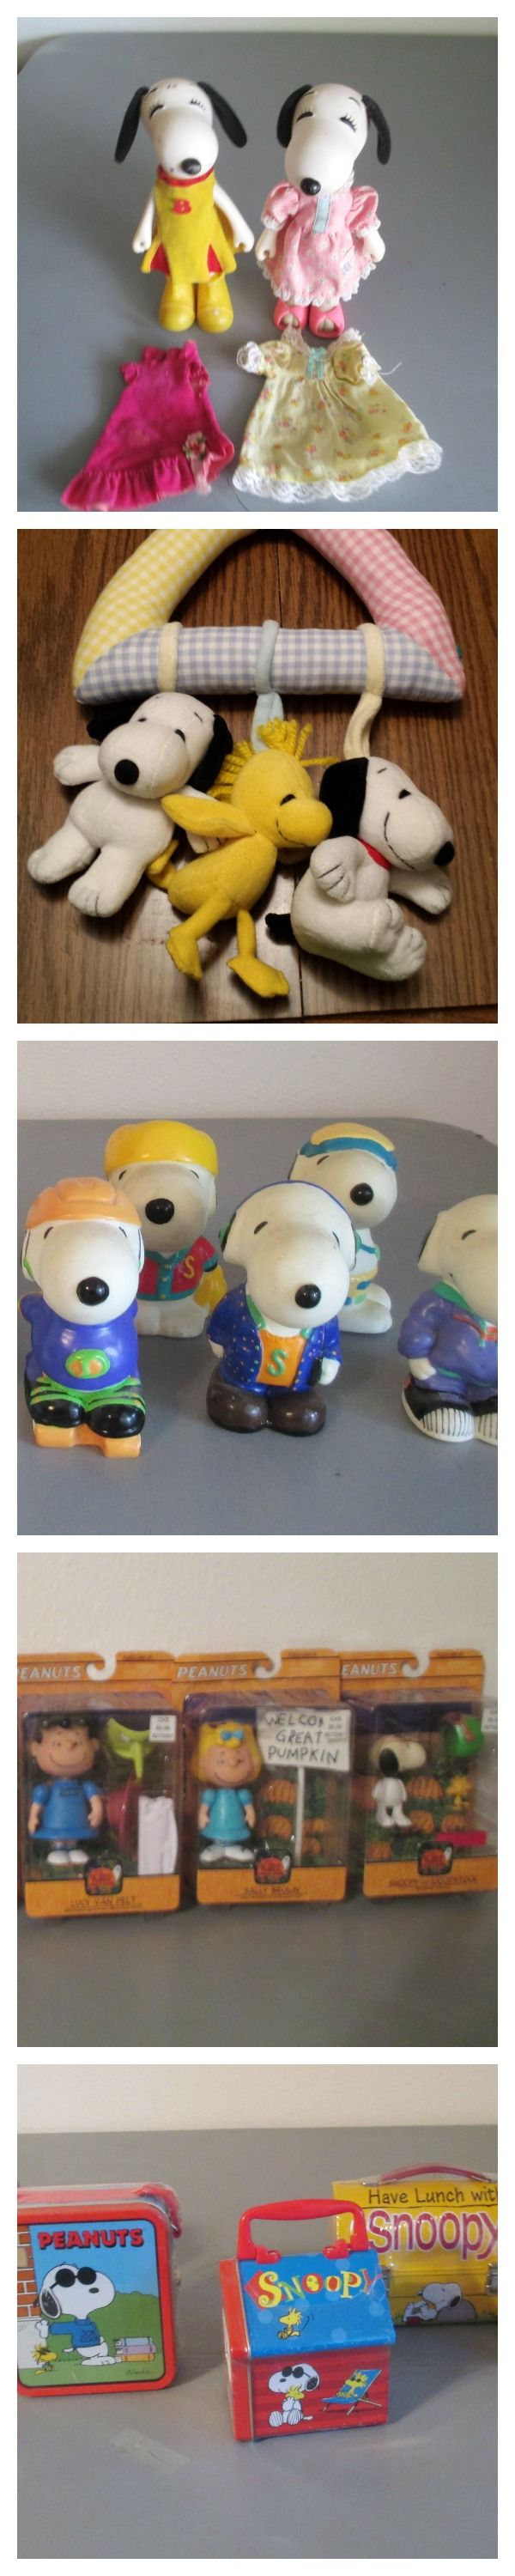 Fun for kids of all ages! Find Snoopy and Peanuts toys and collectibles for sale at SnoopyList.com, the Peanuts classified ad listing site.